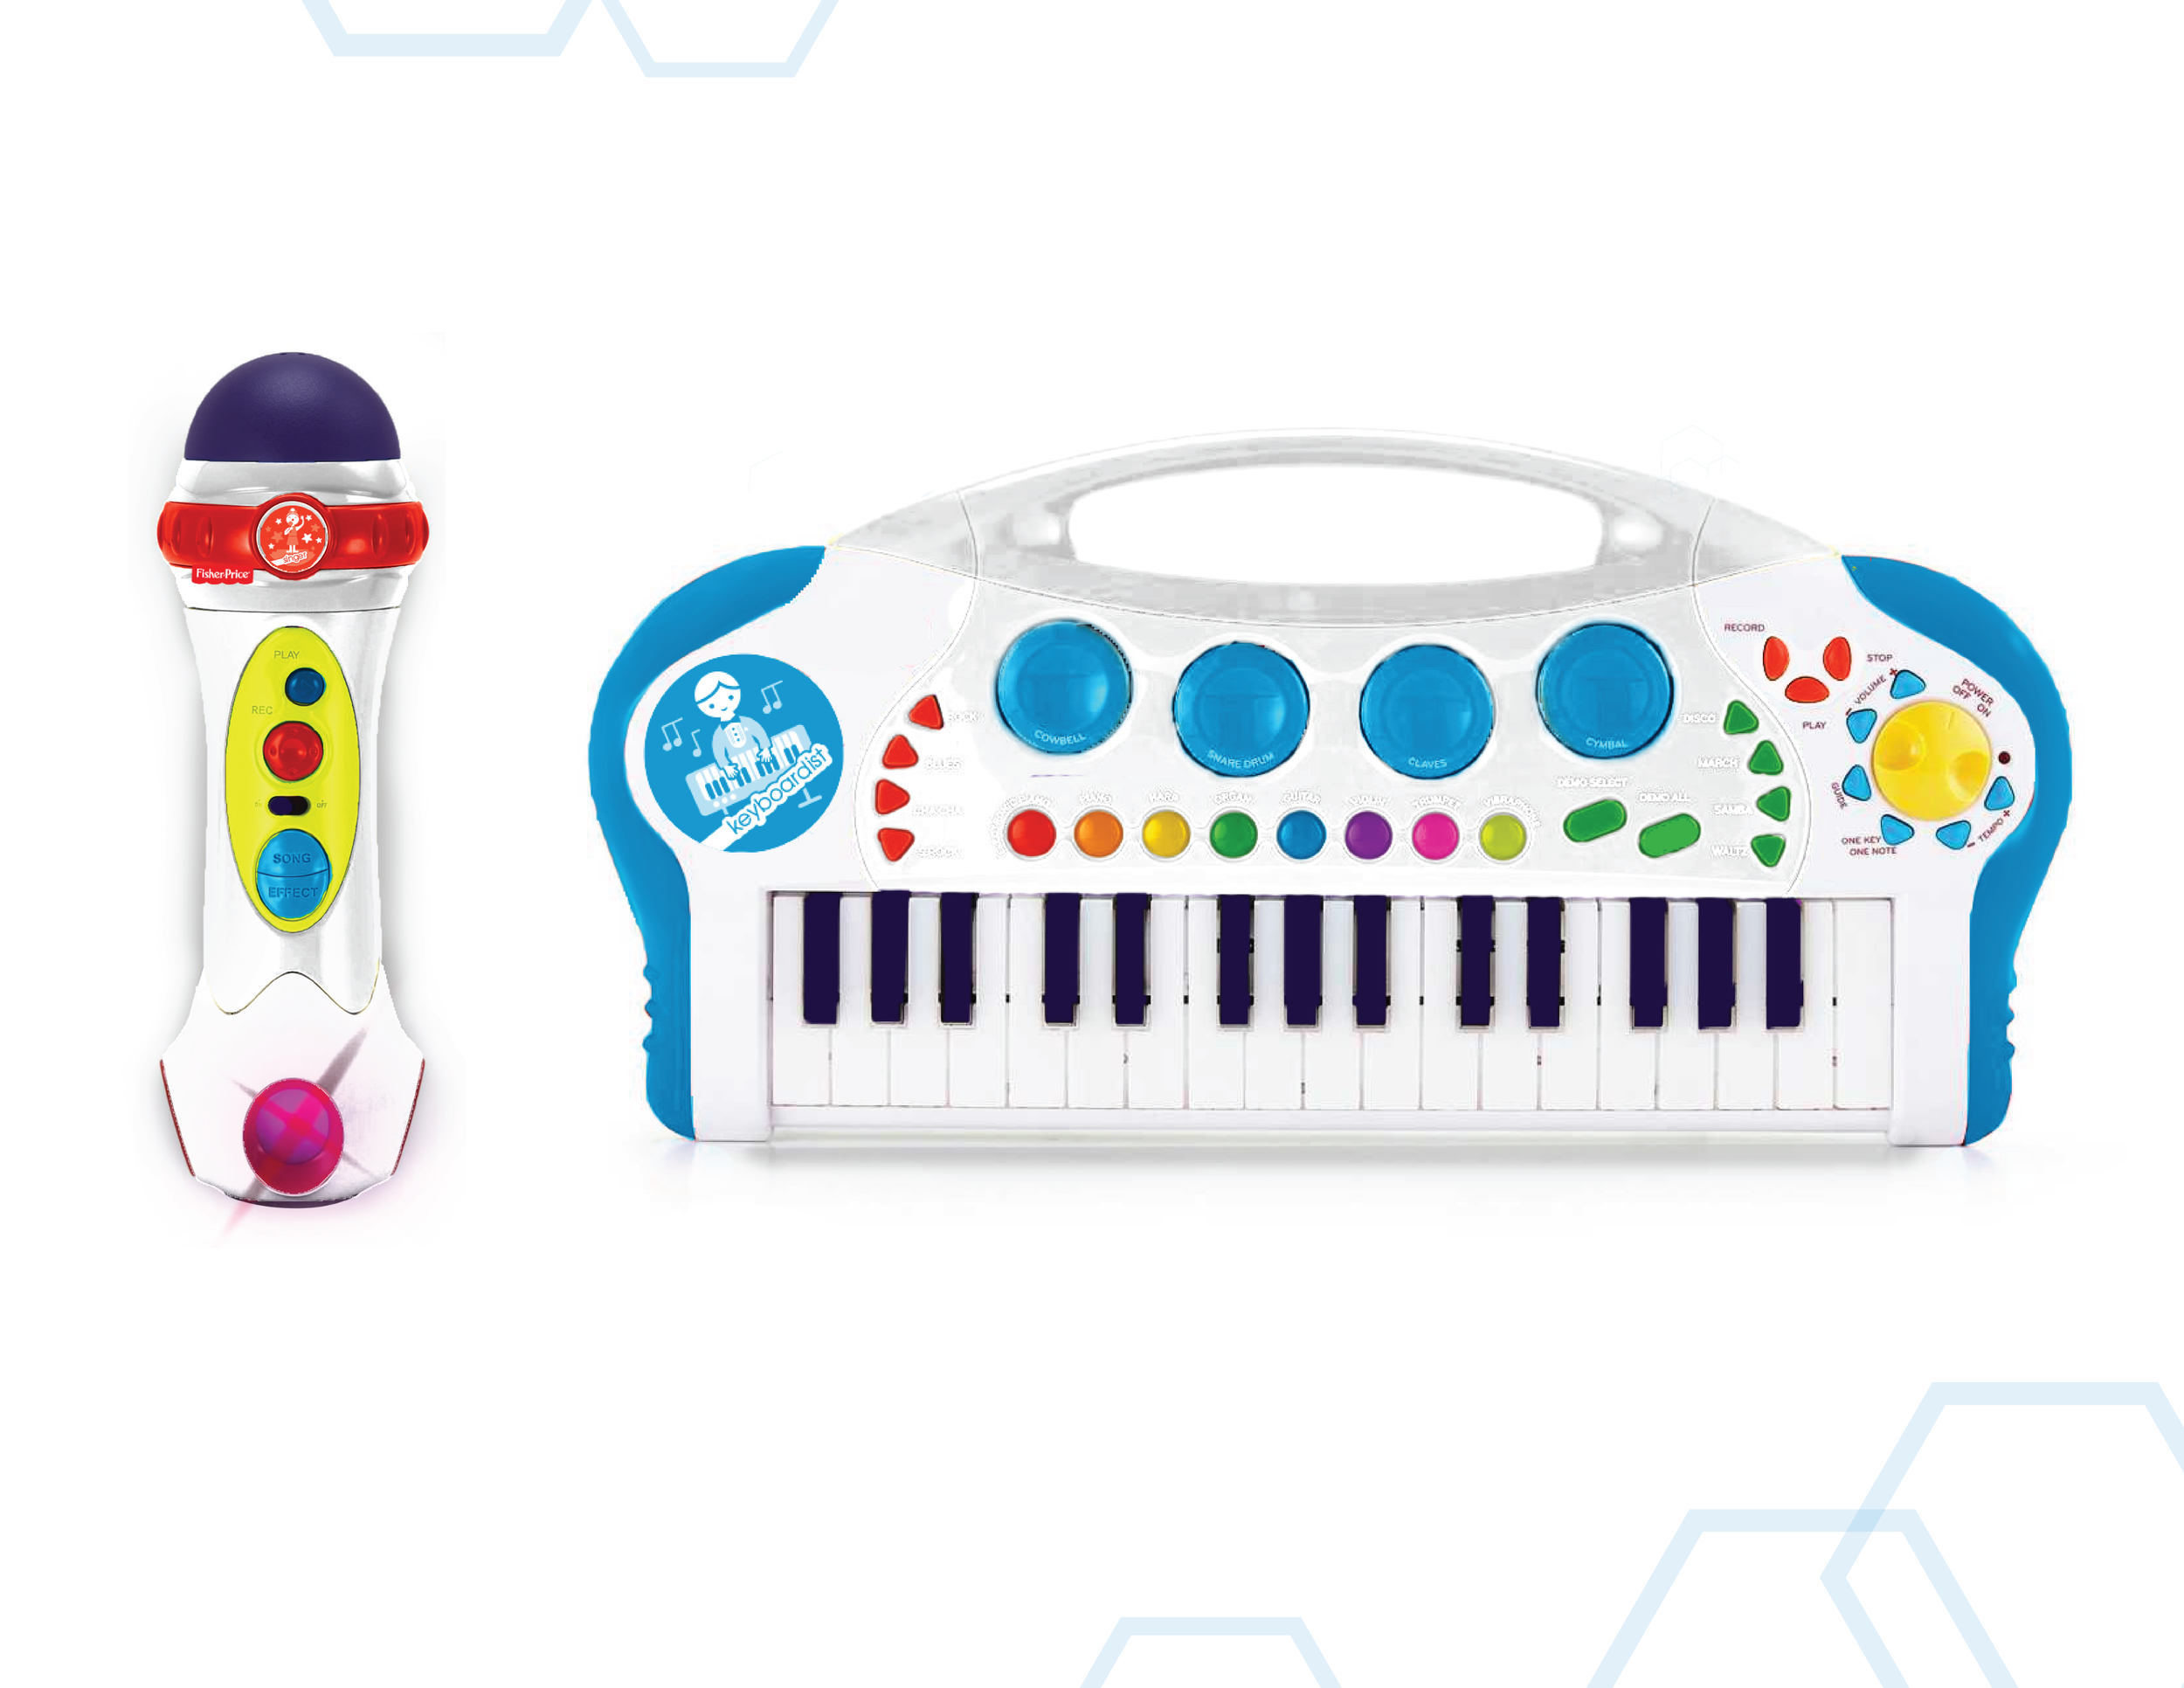 2017_Preschool_Electronics_and_Musical_Instruments_Guide.png